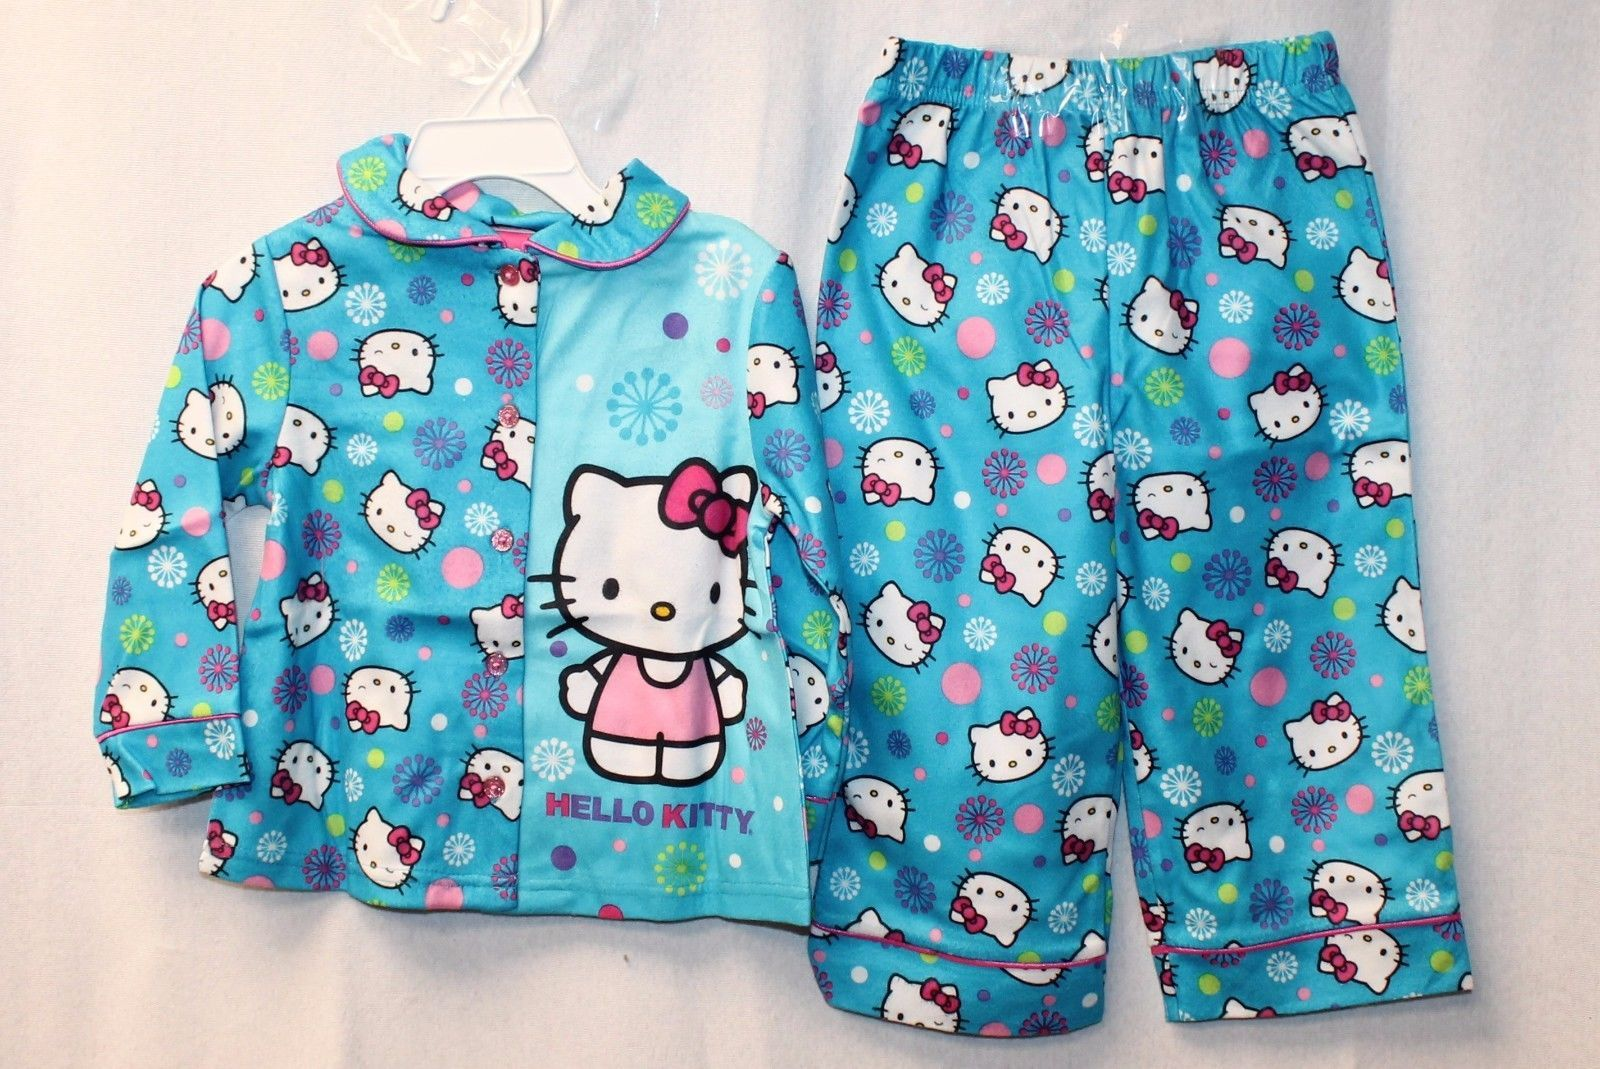 Hello Kitty Toddler Girls Kitty In Mint 4 Piece Cotton Pajama Set 2T, Mint//Pink